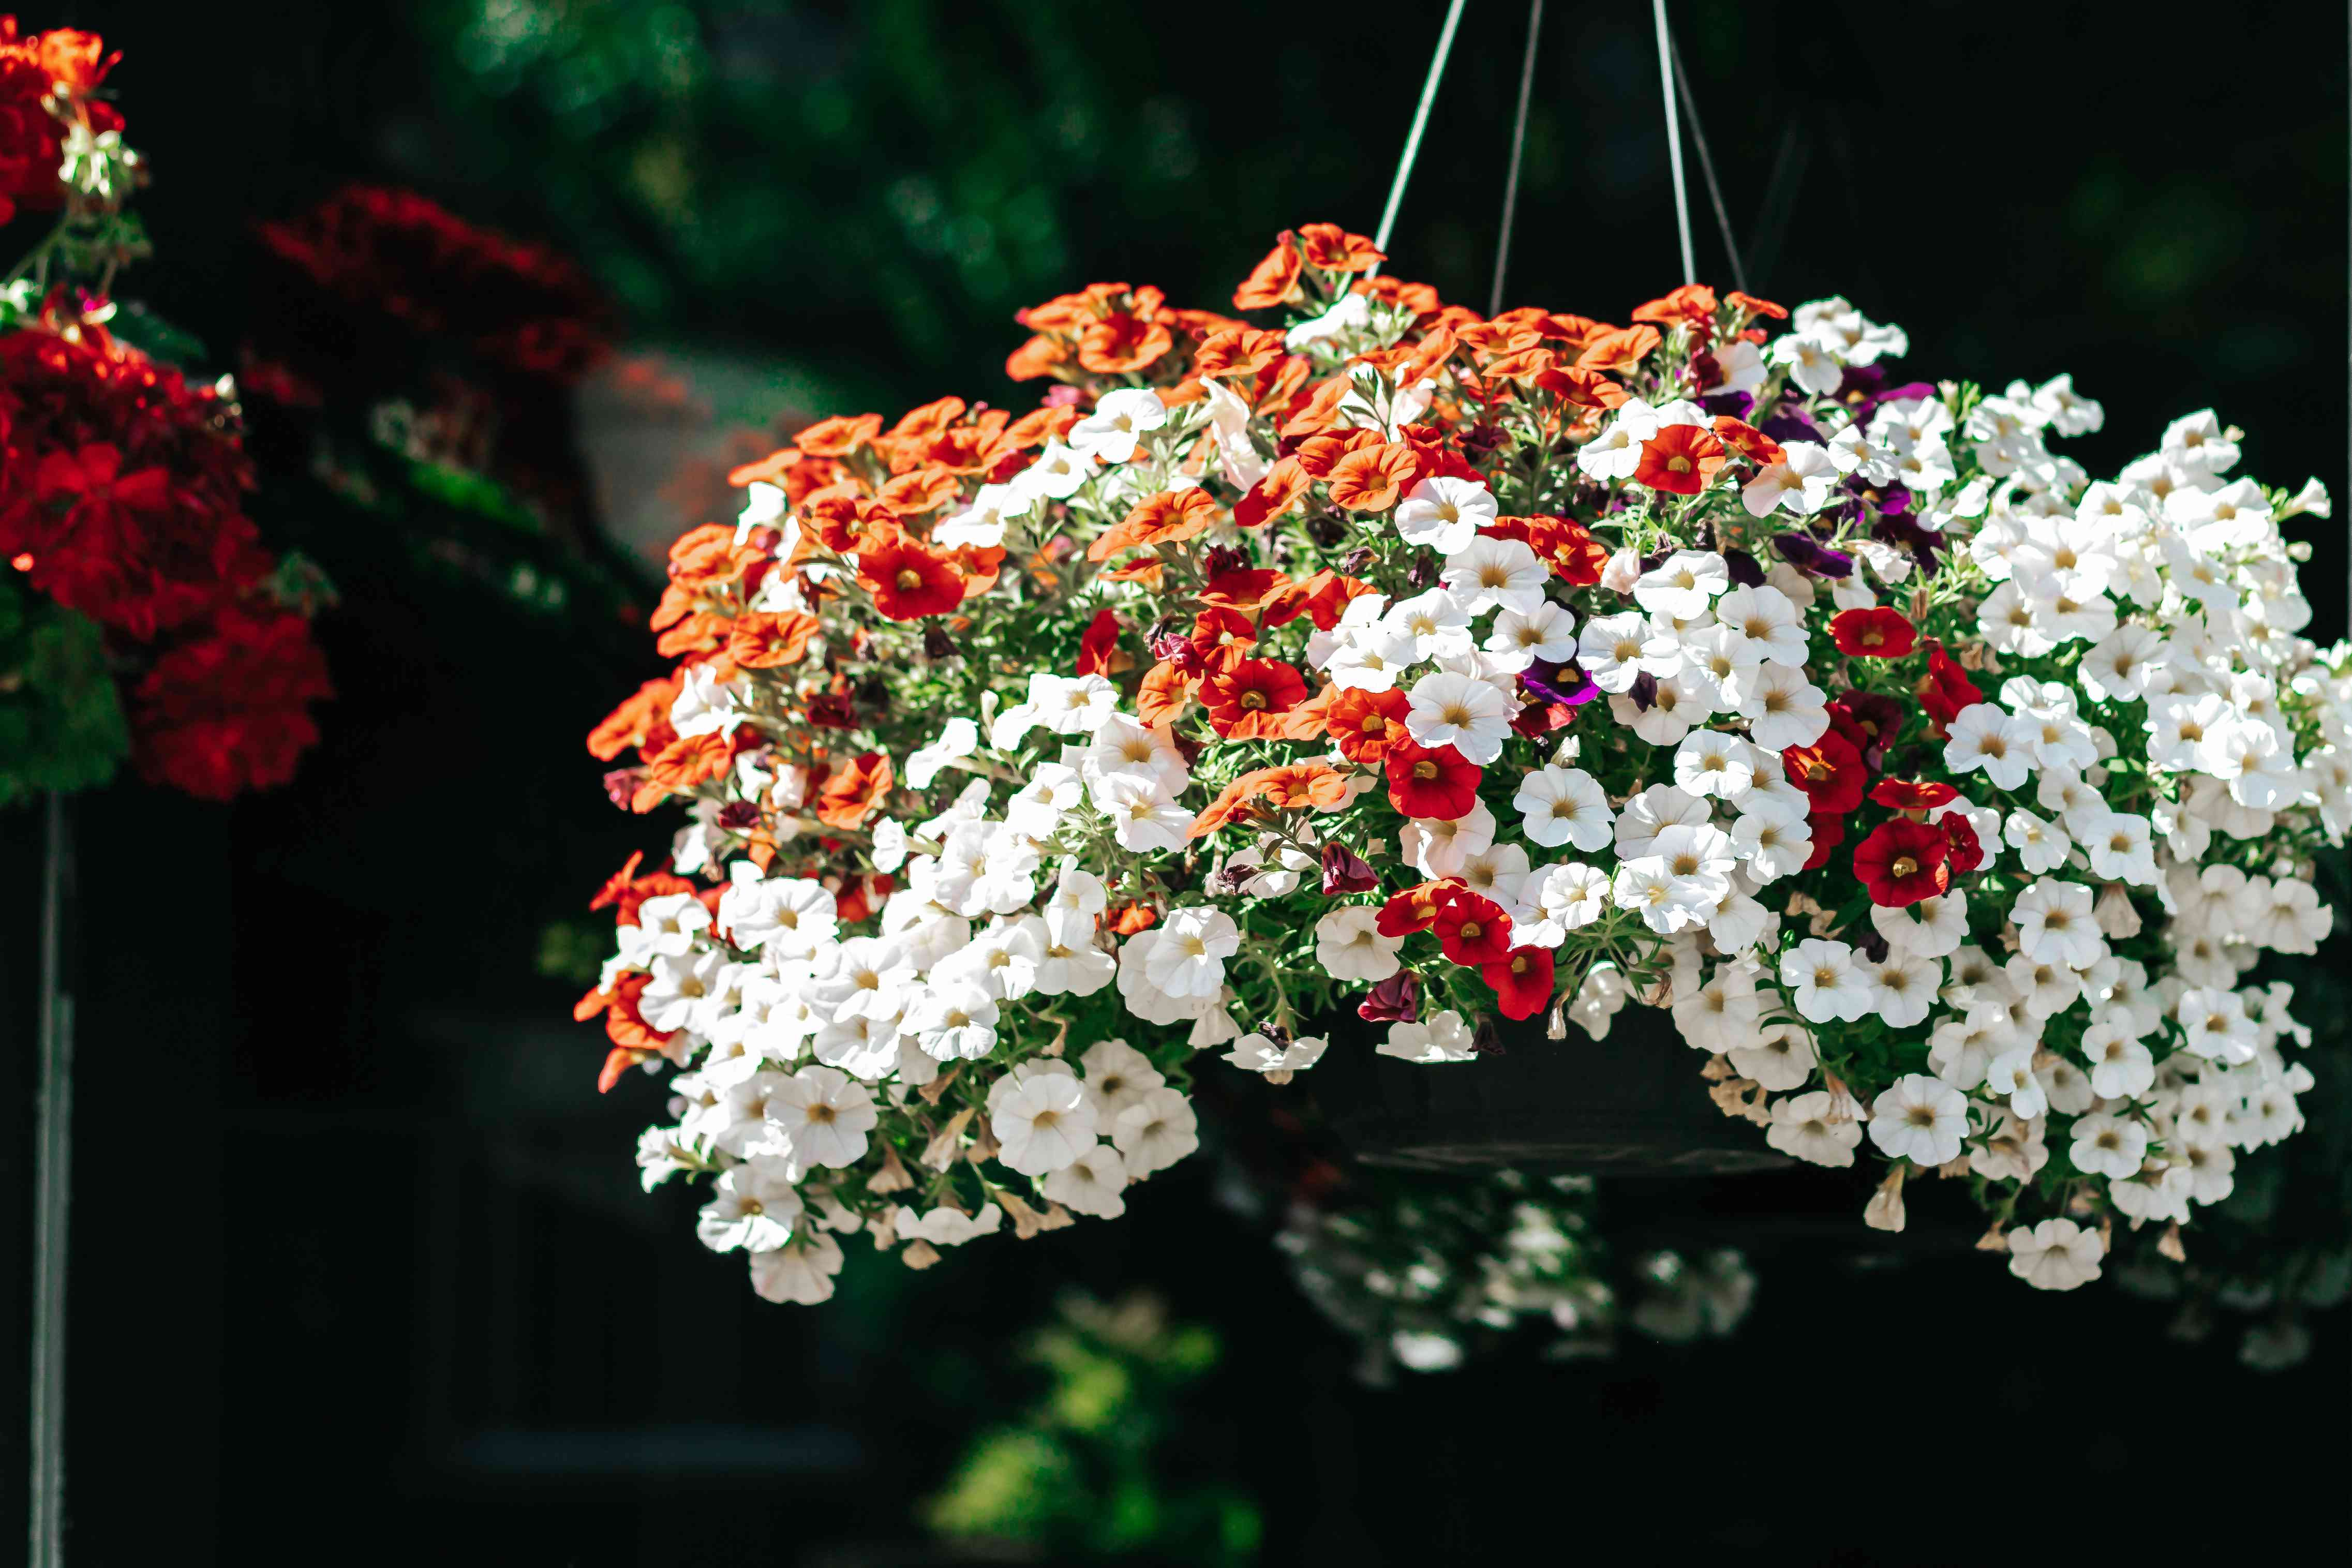 million bells in a hanging container